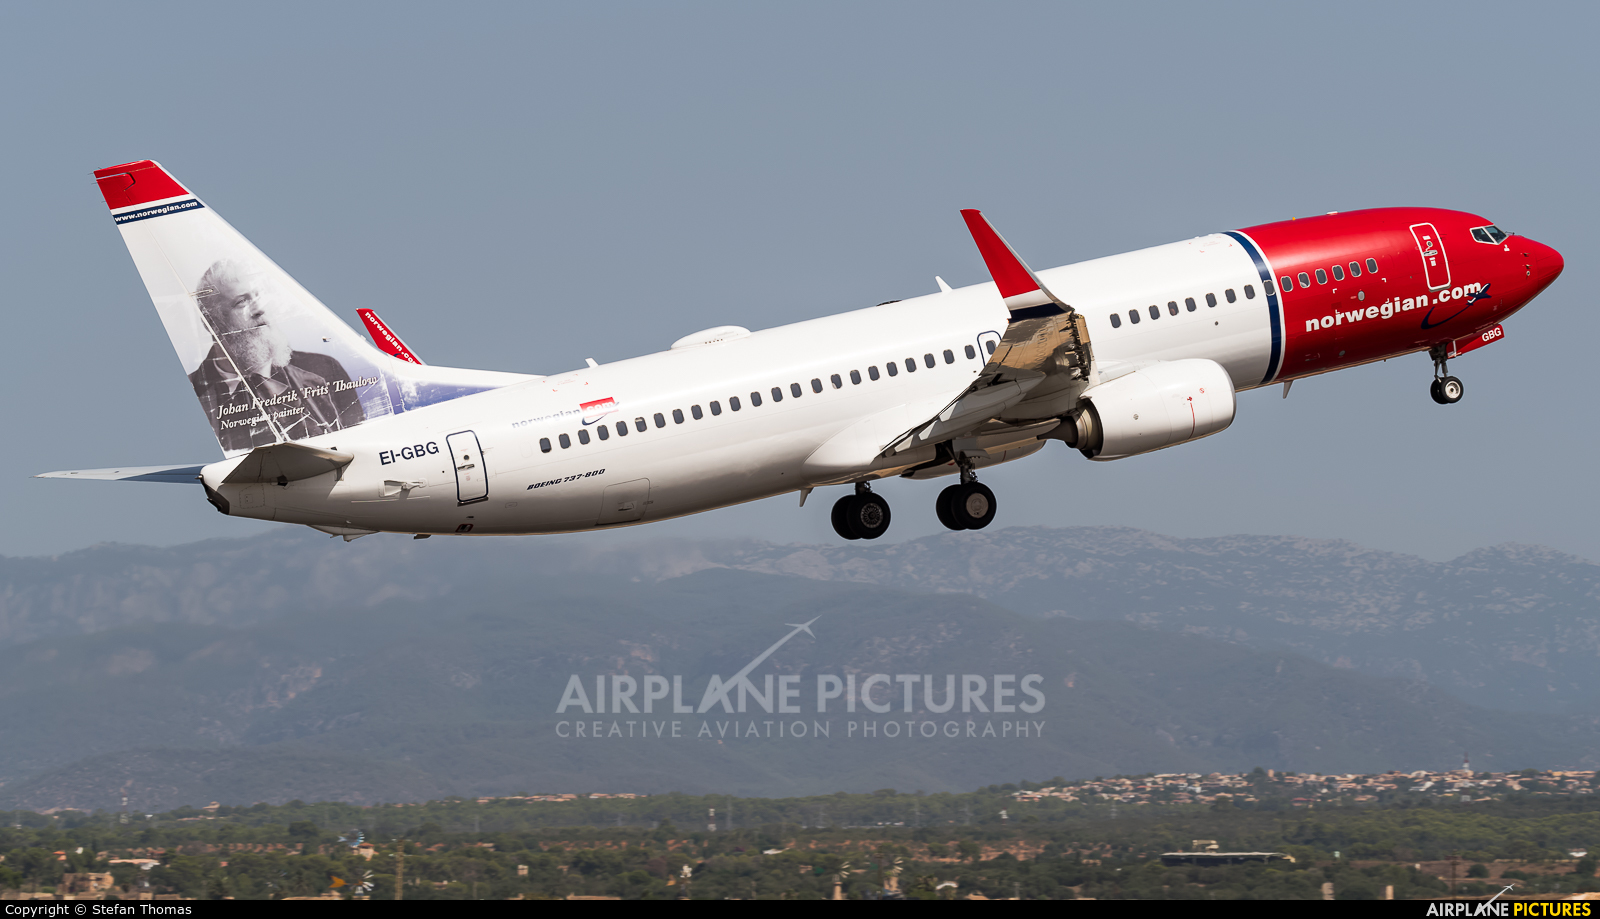 Norwegian Air International EI-GBG aircraft at Palma de Mallorca